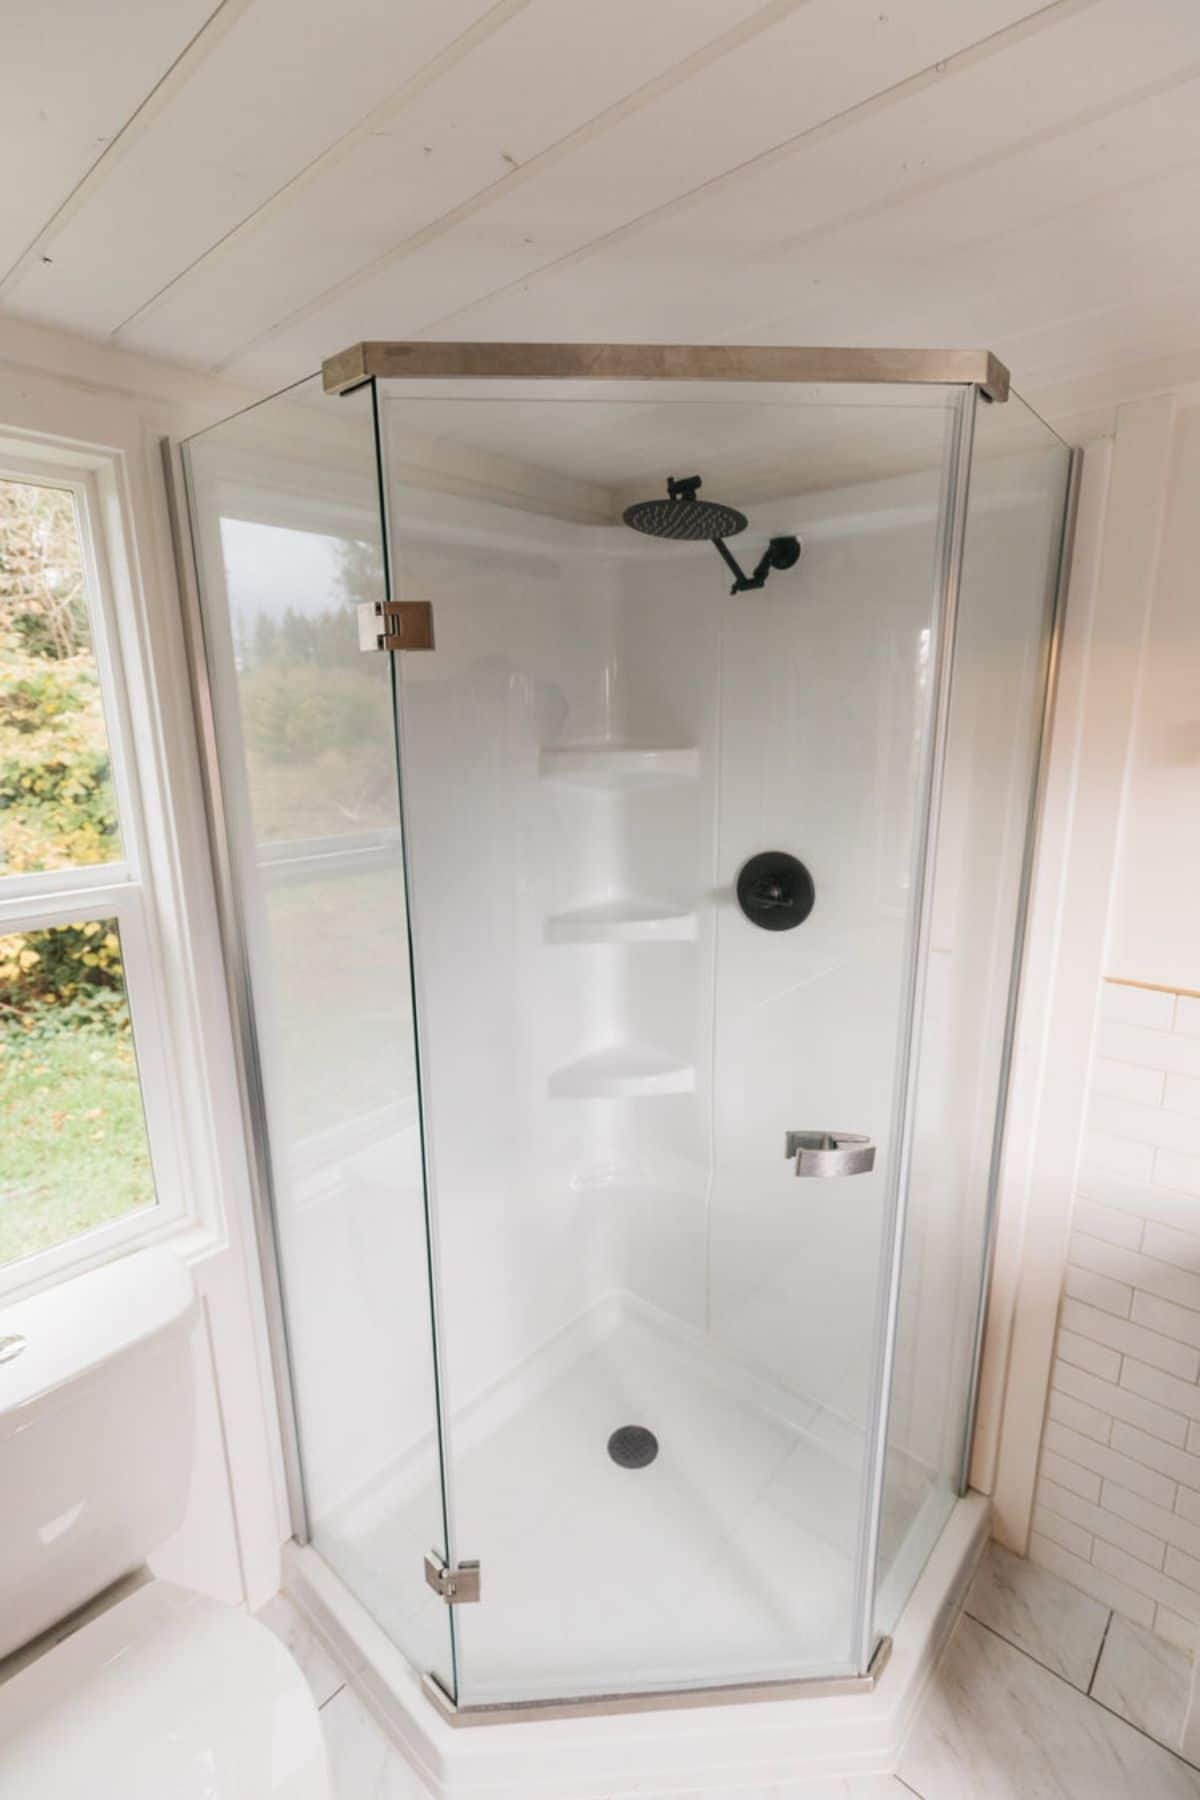 Corner shower with glass doors against wall with window